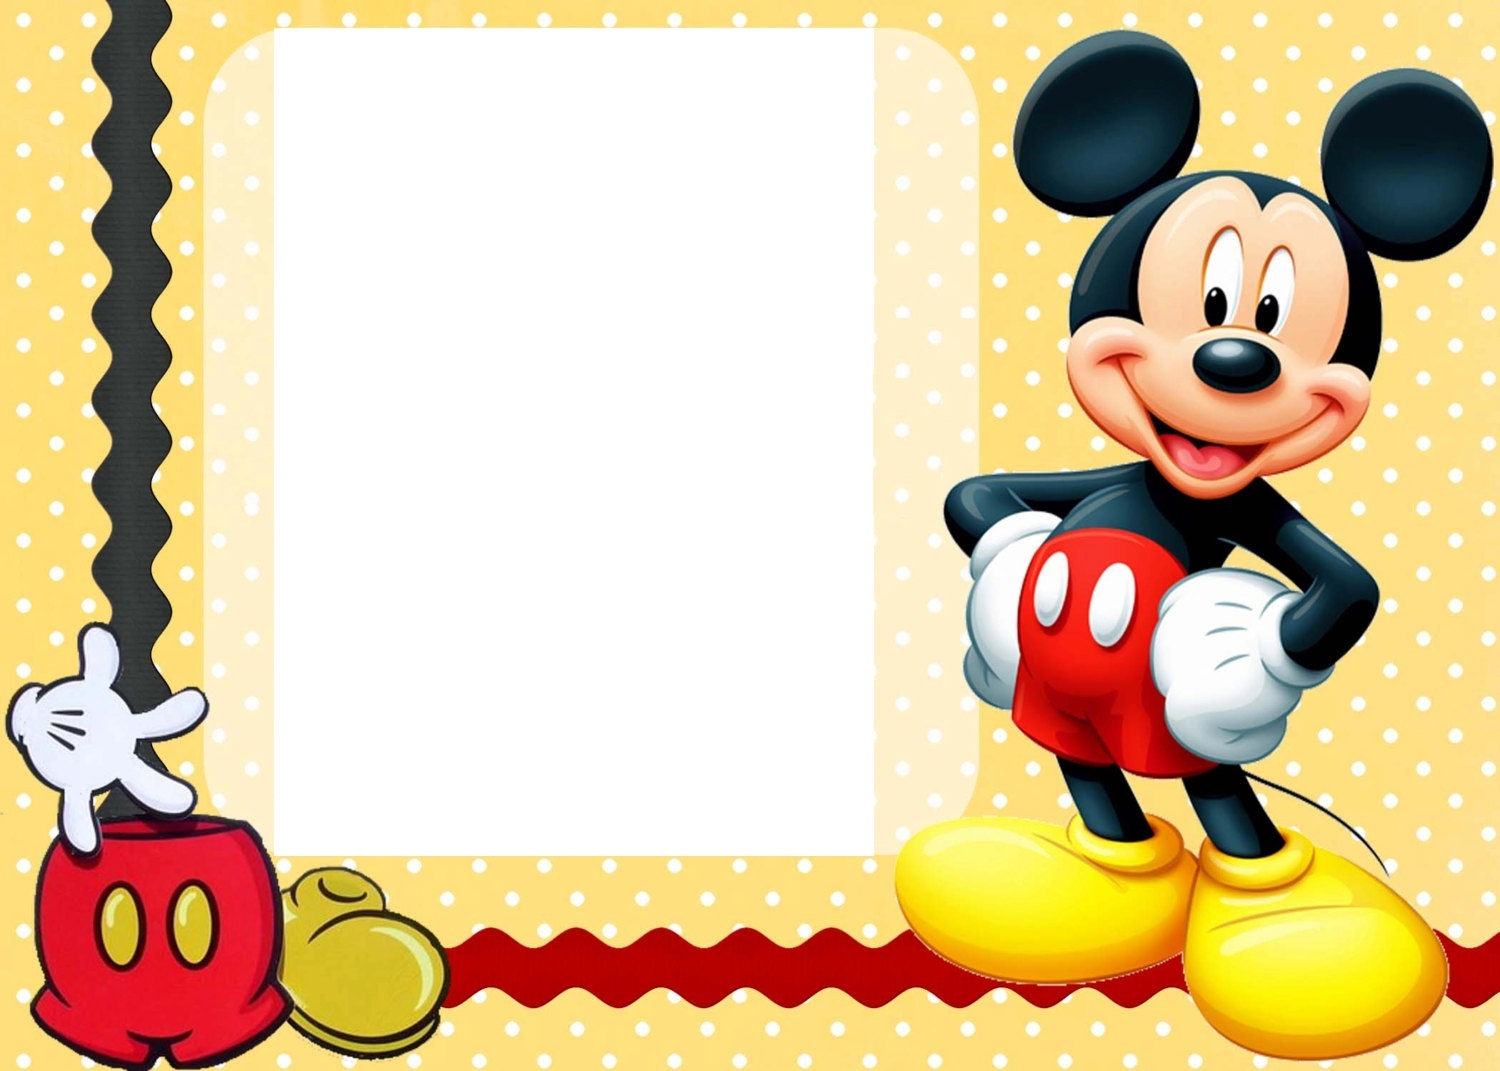 Free Mickey Mouse Template, Download Free Clip Art, Free Clip Art On - Free Printable Mickey Mouse Birthday Invitations